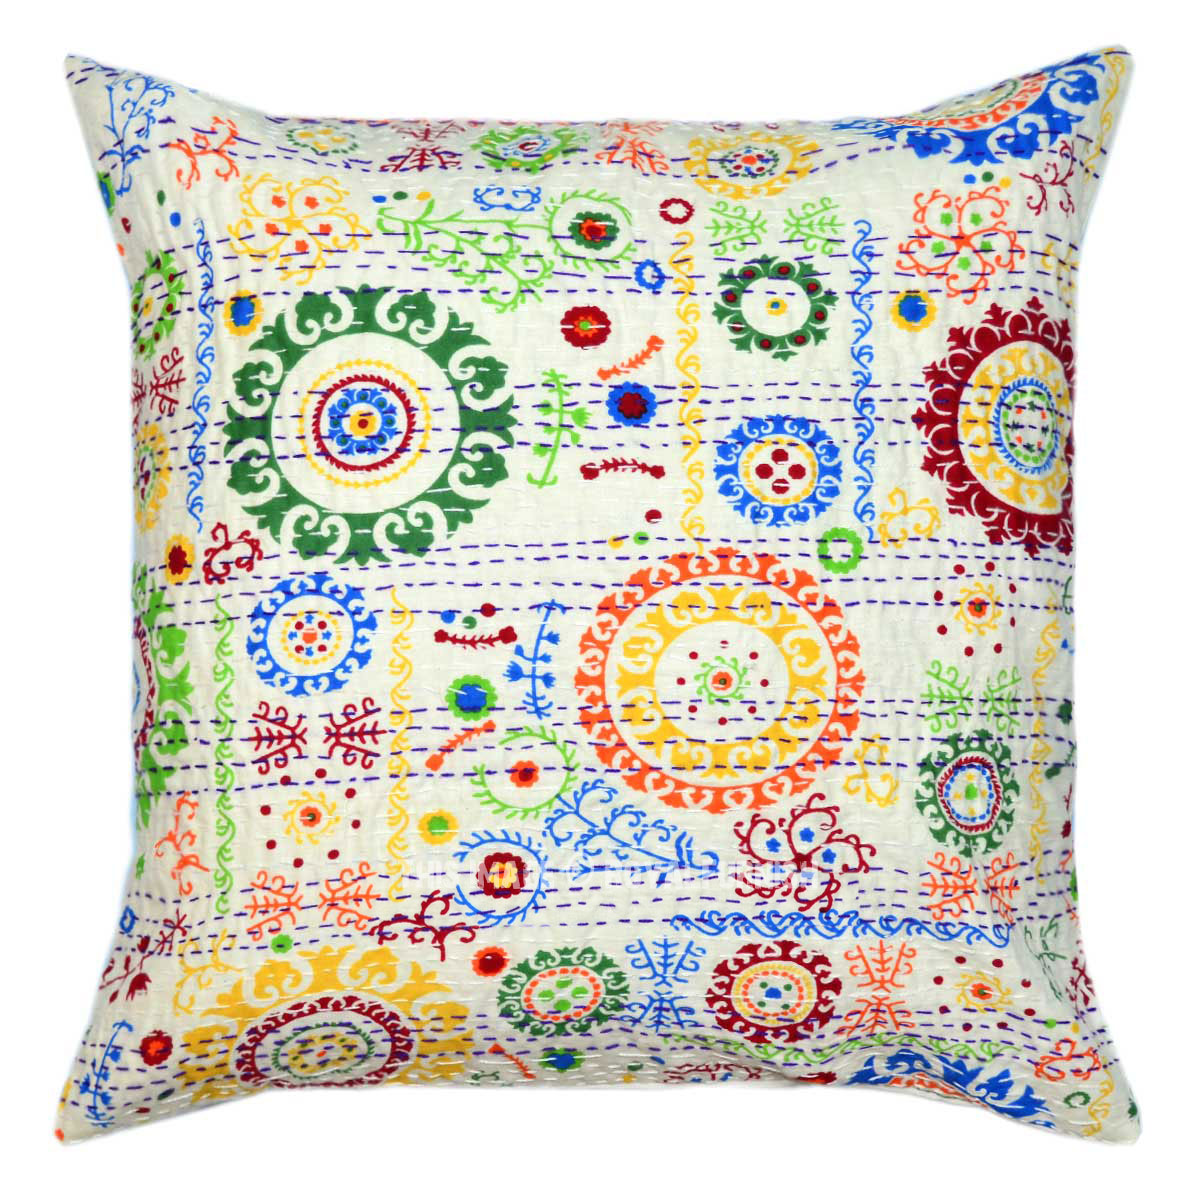 Round Throw Pillow Covers : 18X18 White Decorative Multi Round Circle Cotton Throw Pillow Cover - RoyalFurnish.com